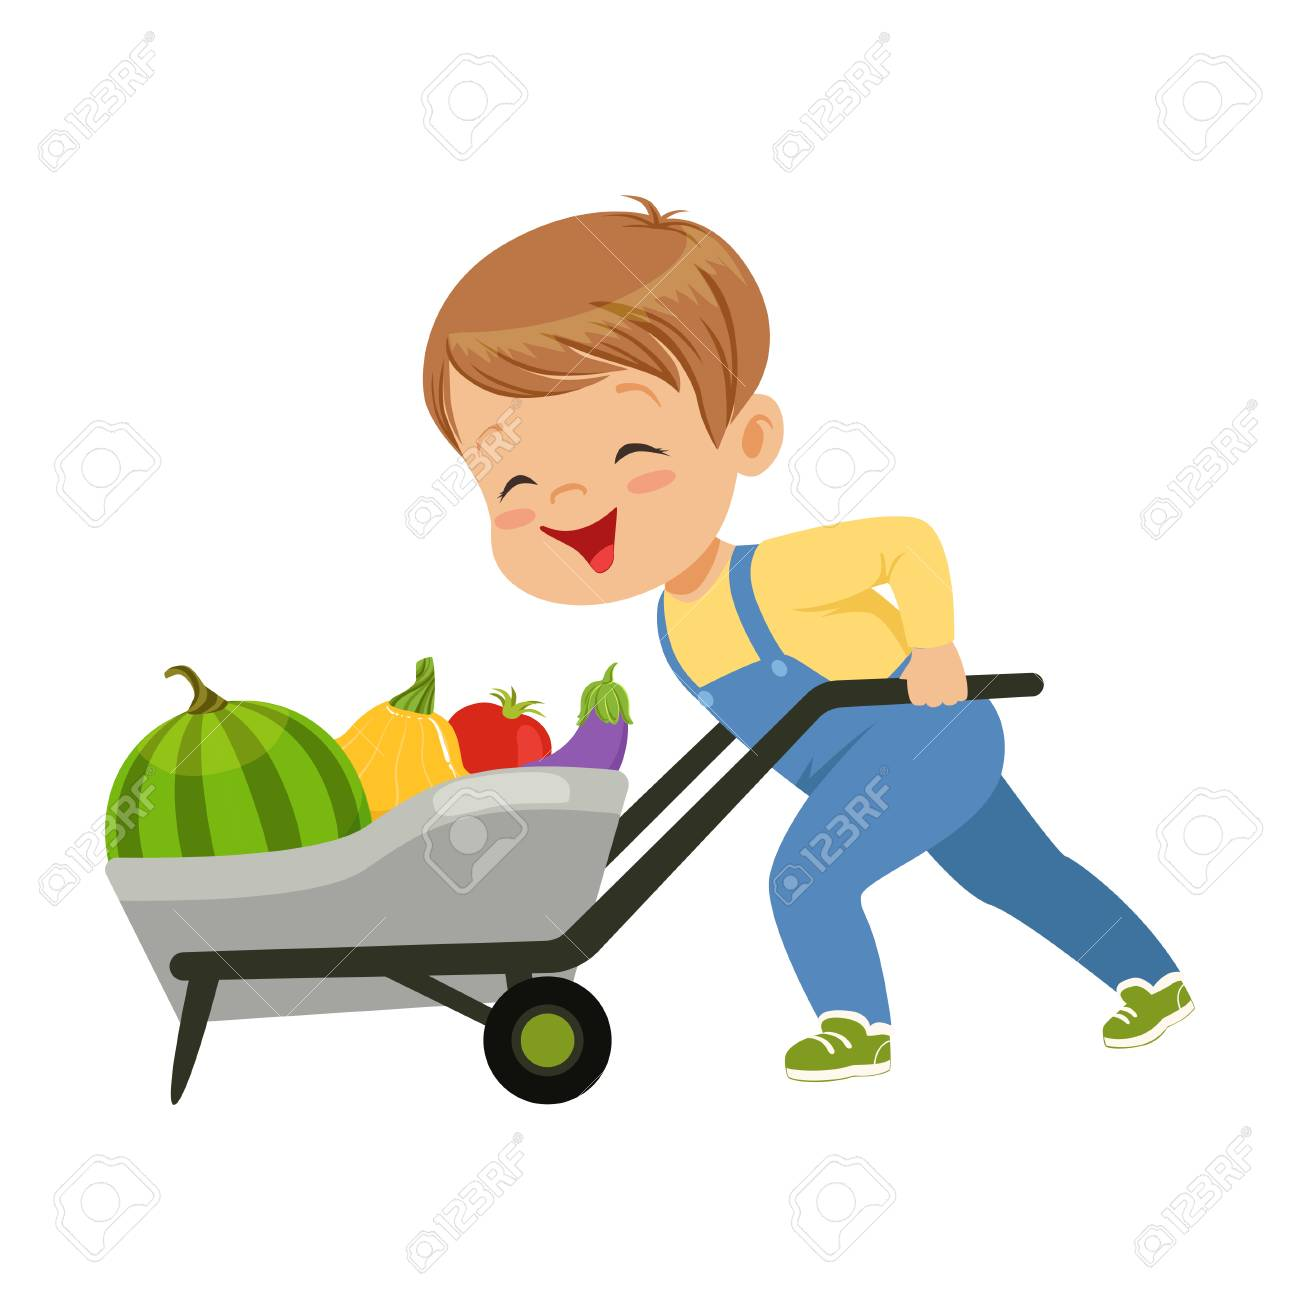 Cute little boy character pushing wheelbarrow full of vegetables vector Illustration on a white background - 102021501